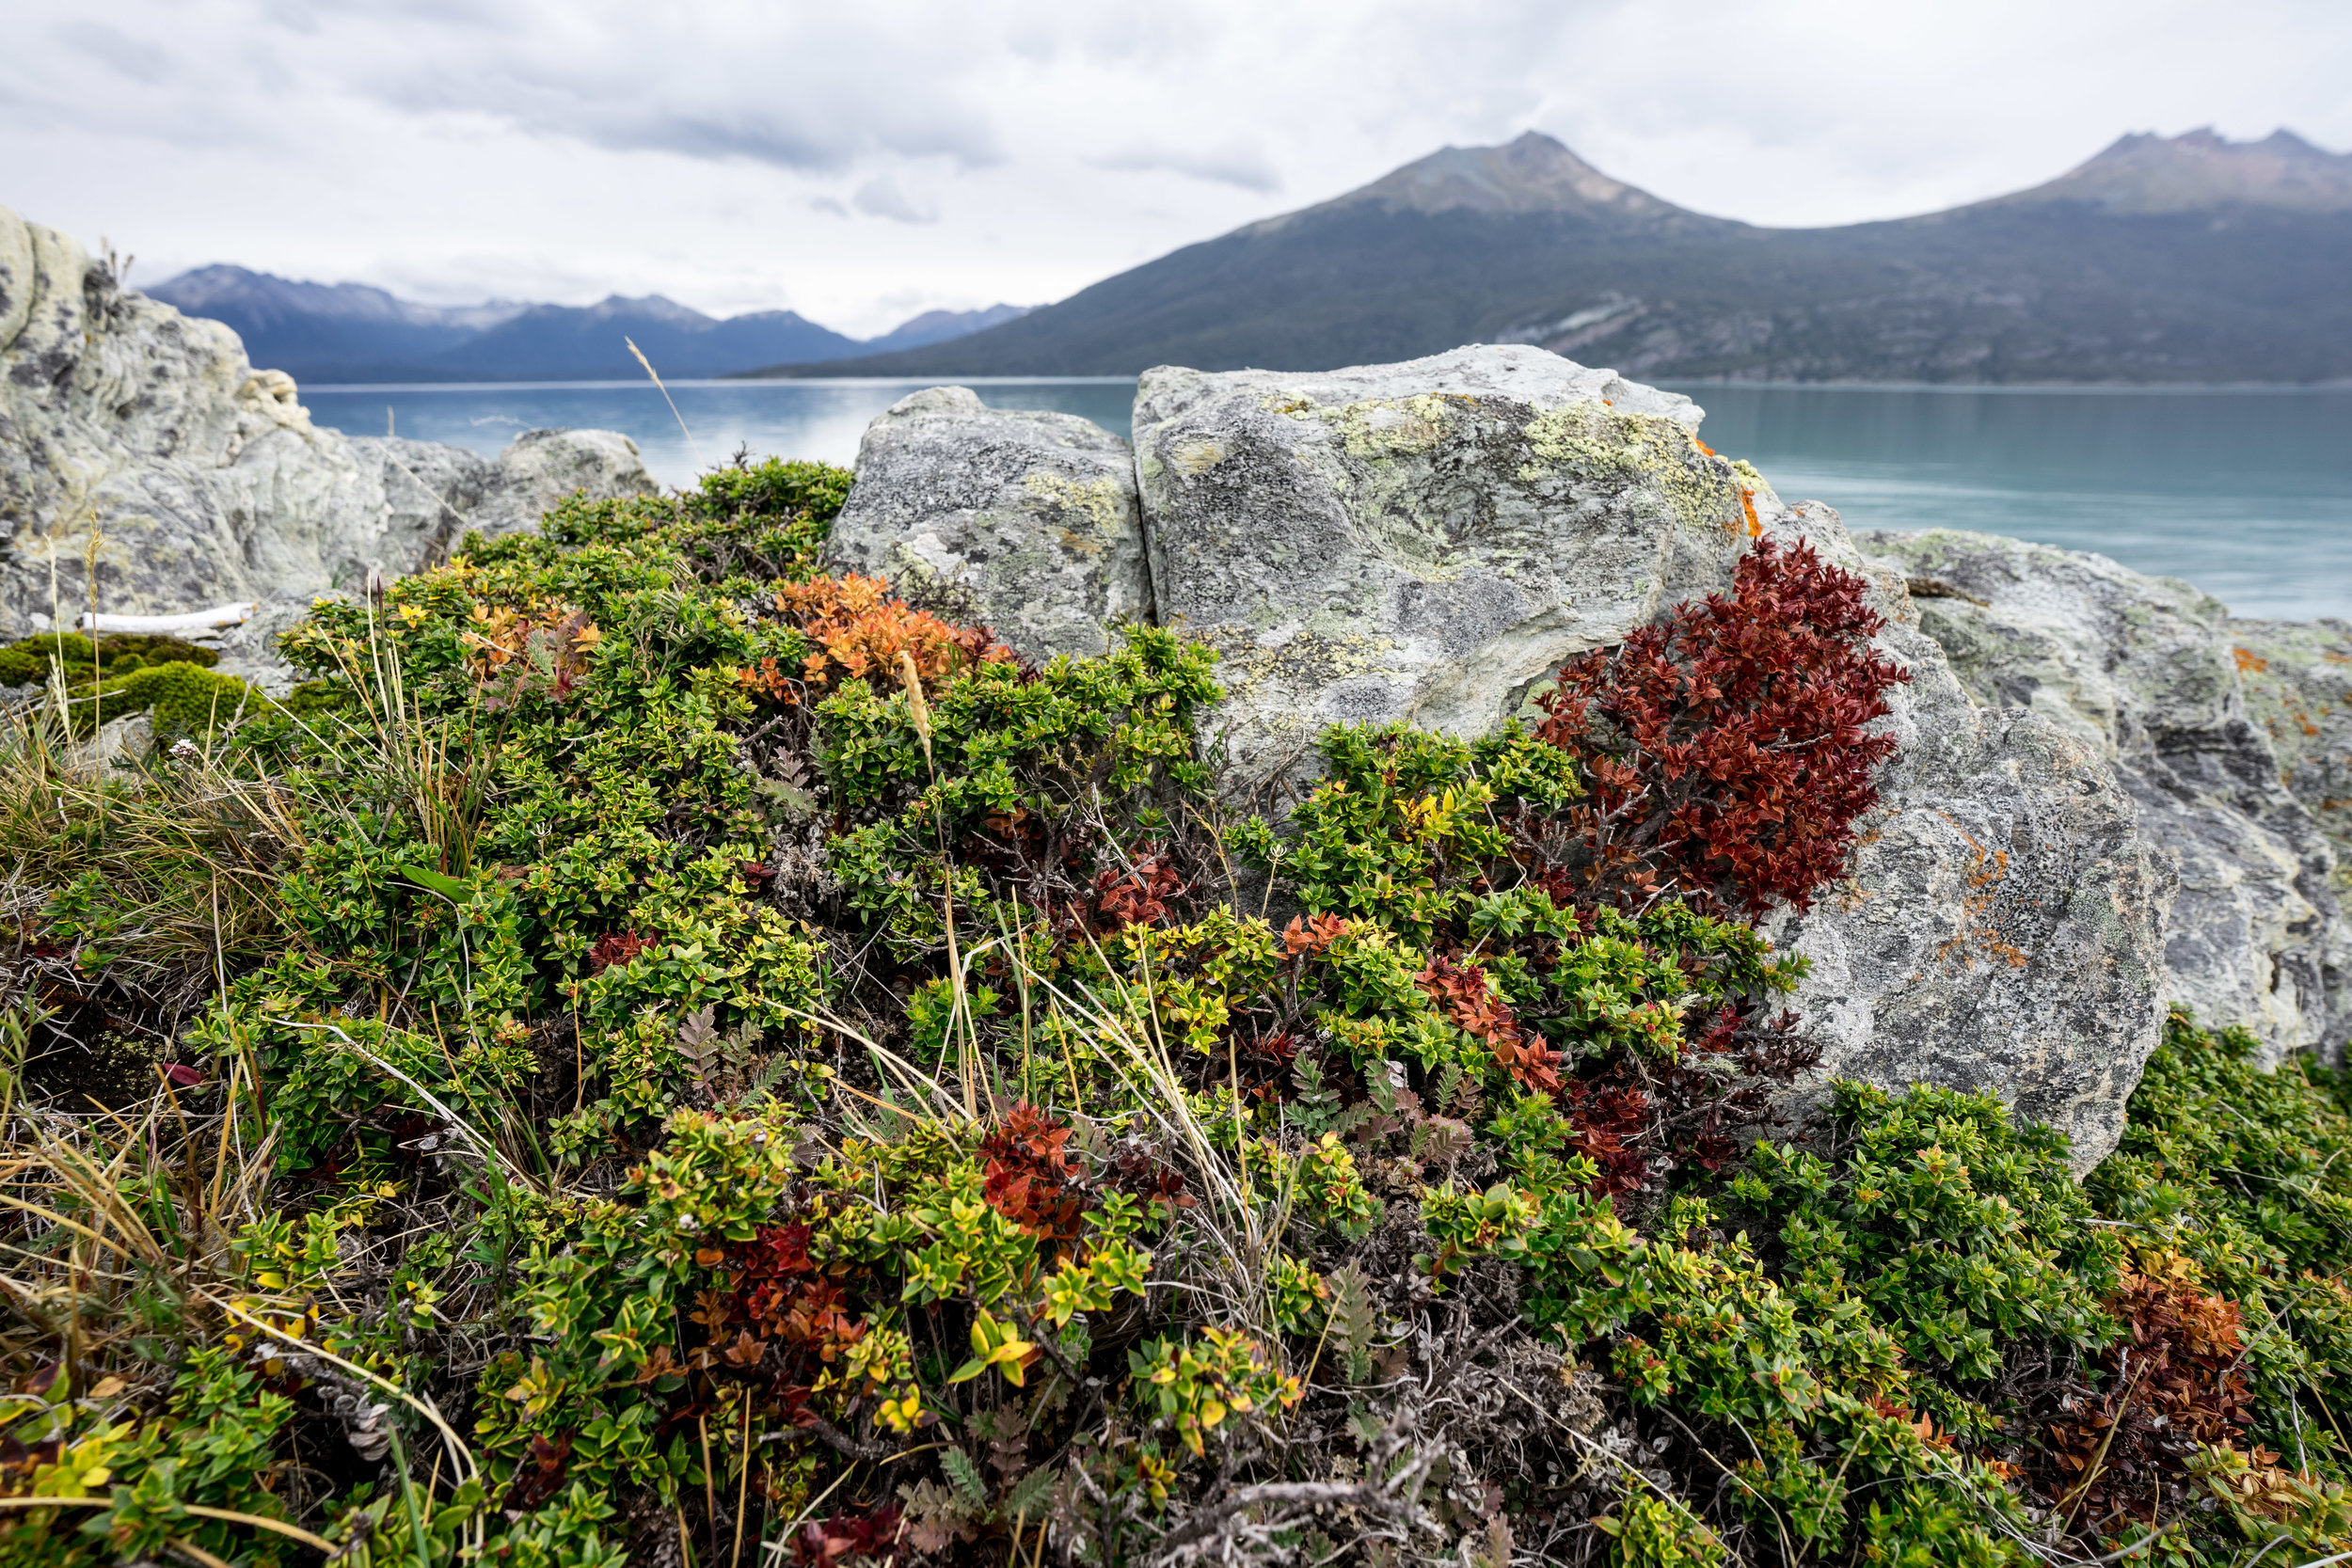 - The colors of the Yendegaia Bay are one of the most mesmerizing memory I have of that place. Moving away from the lichens, mosses and liverworts, I started observing the vascular plant world around me. These shrubs were starting to turn a bright red in anticipation of the approaching fall season. Below are a few of the photos taken of small grass vegetation, succulents and tiny flowers.